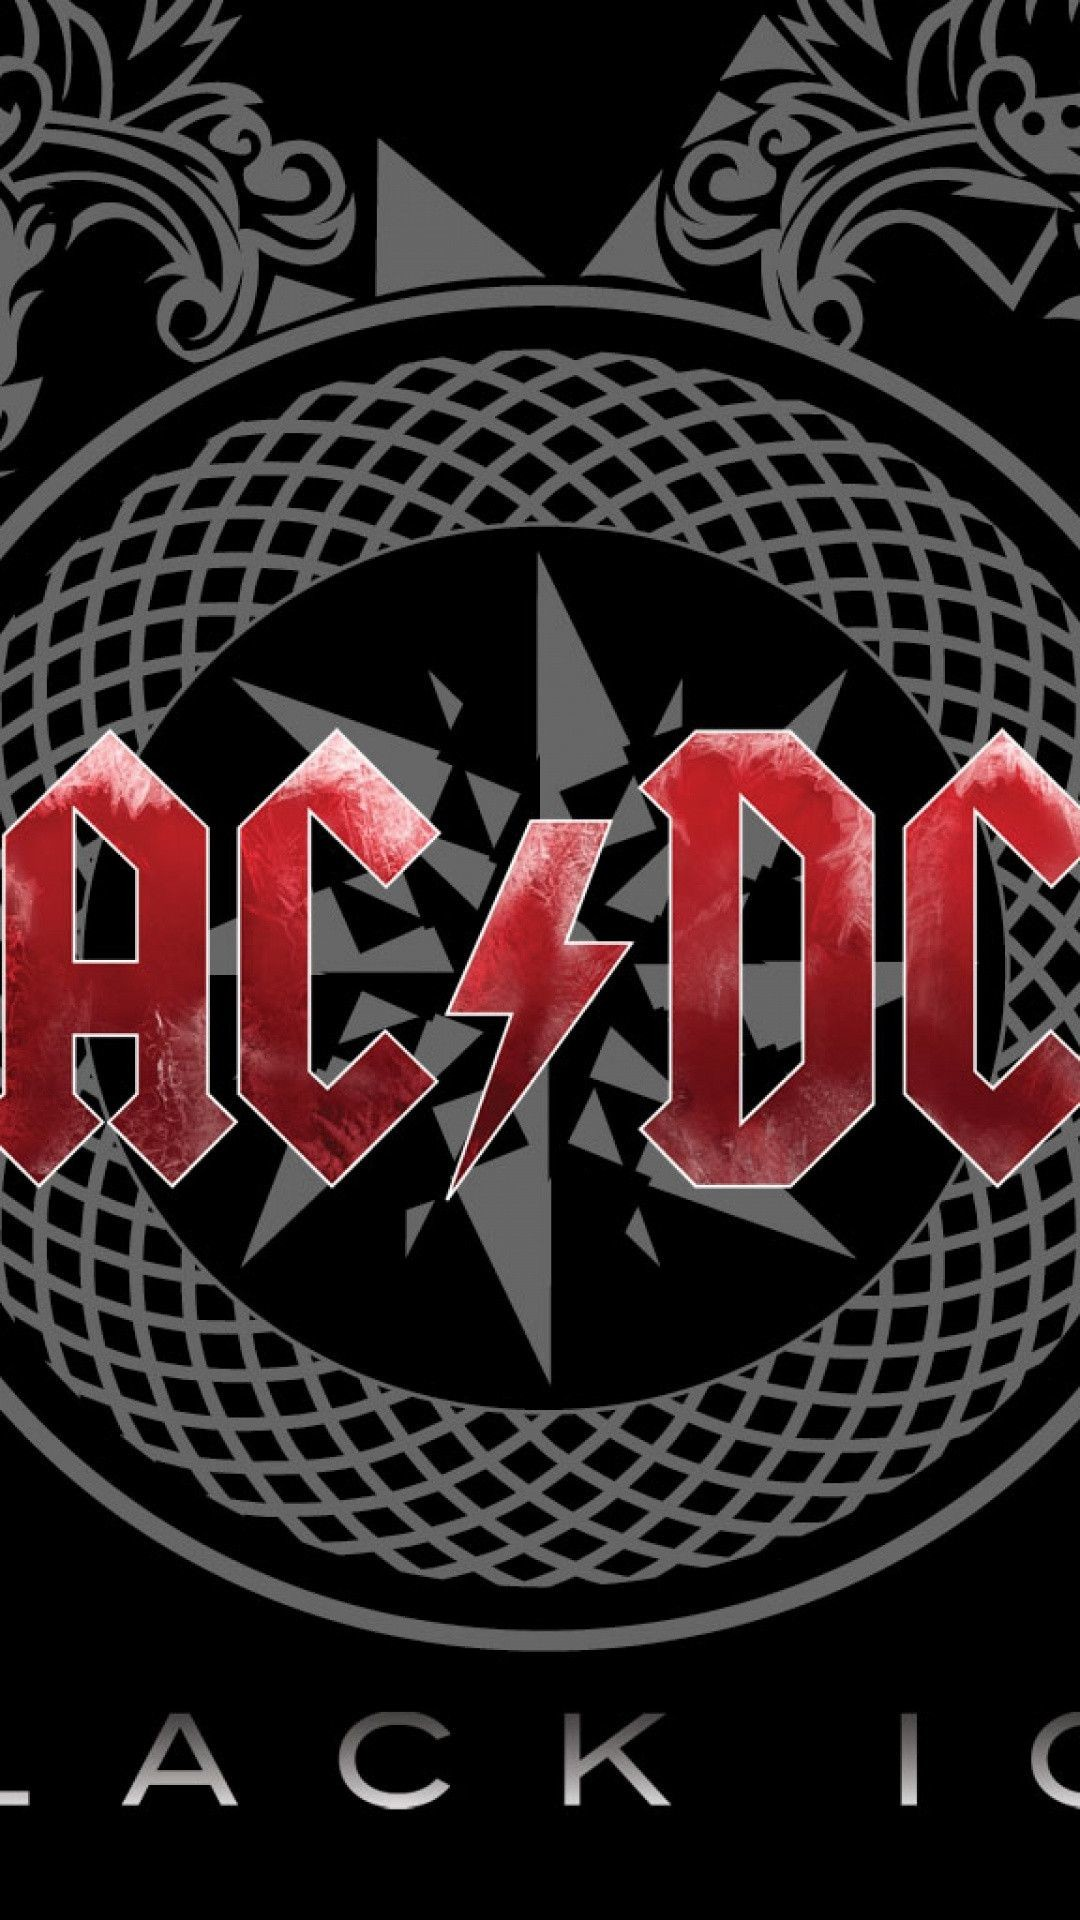 Acdc wallpaper 62 images - Ac dc wallpaper for android ...